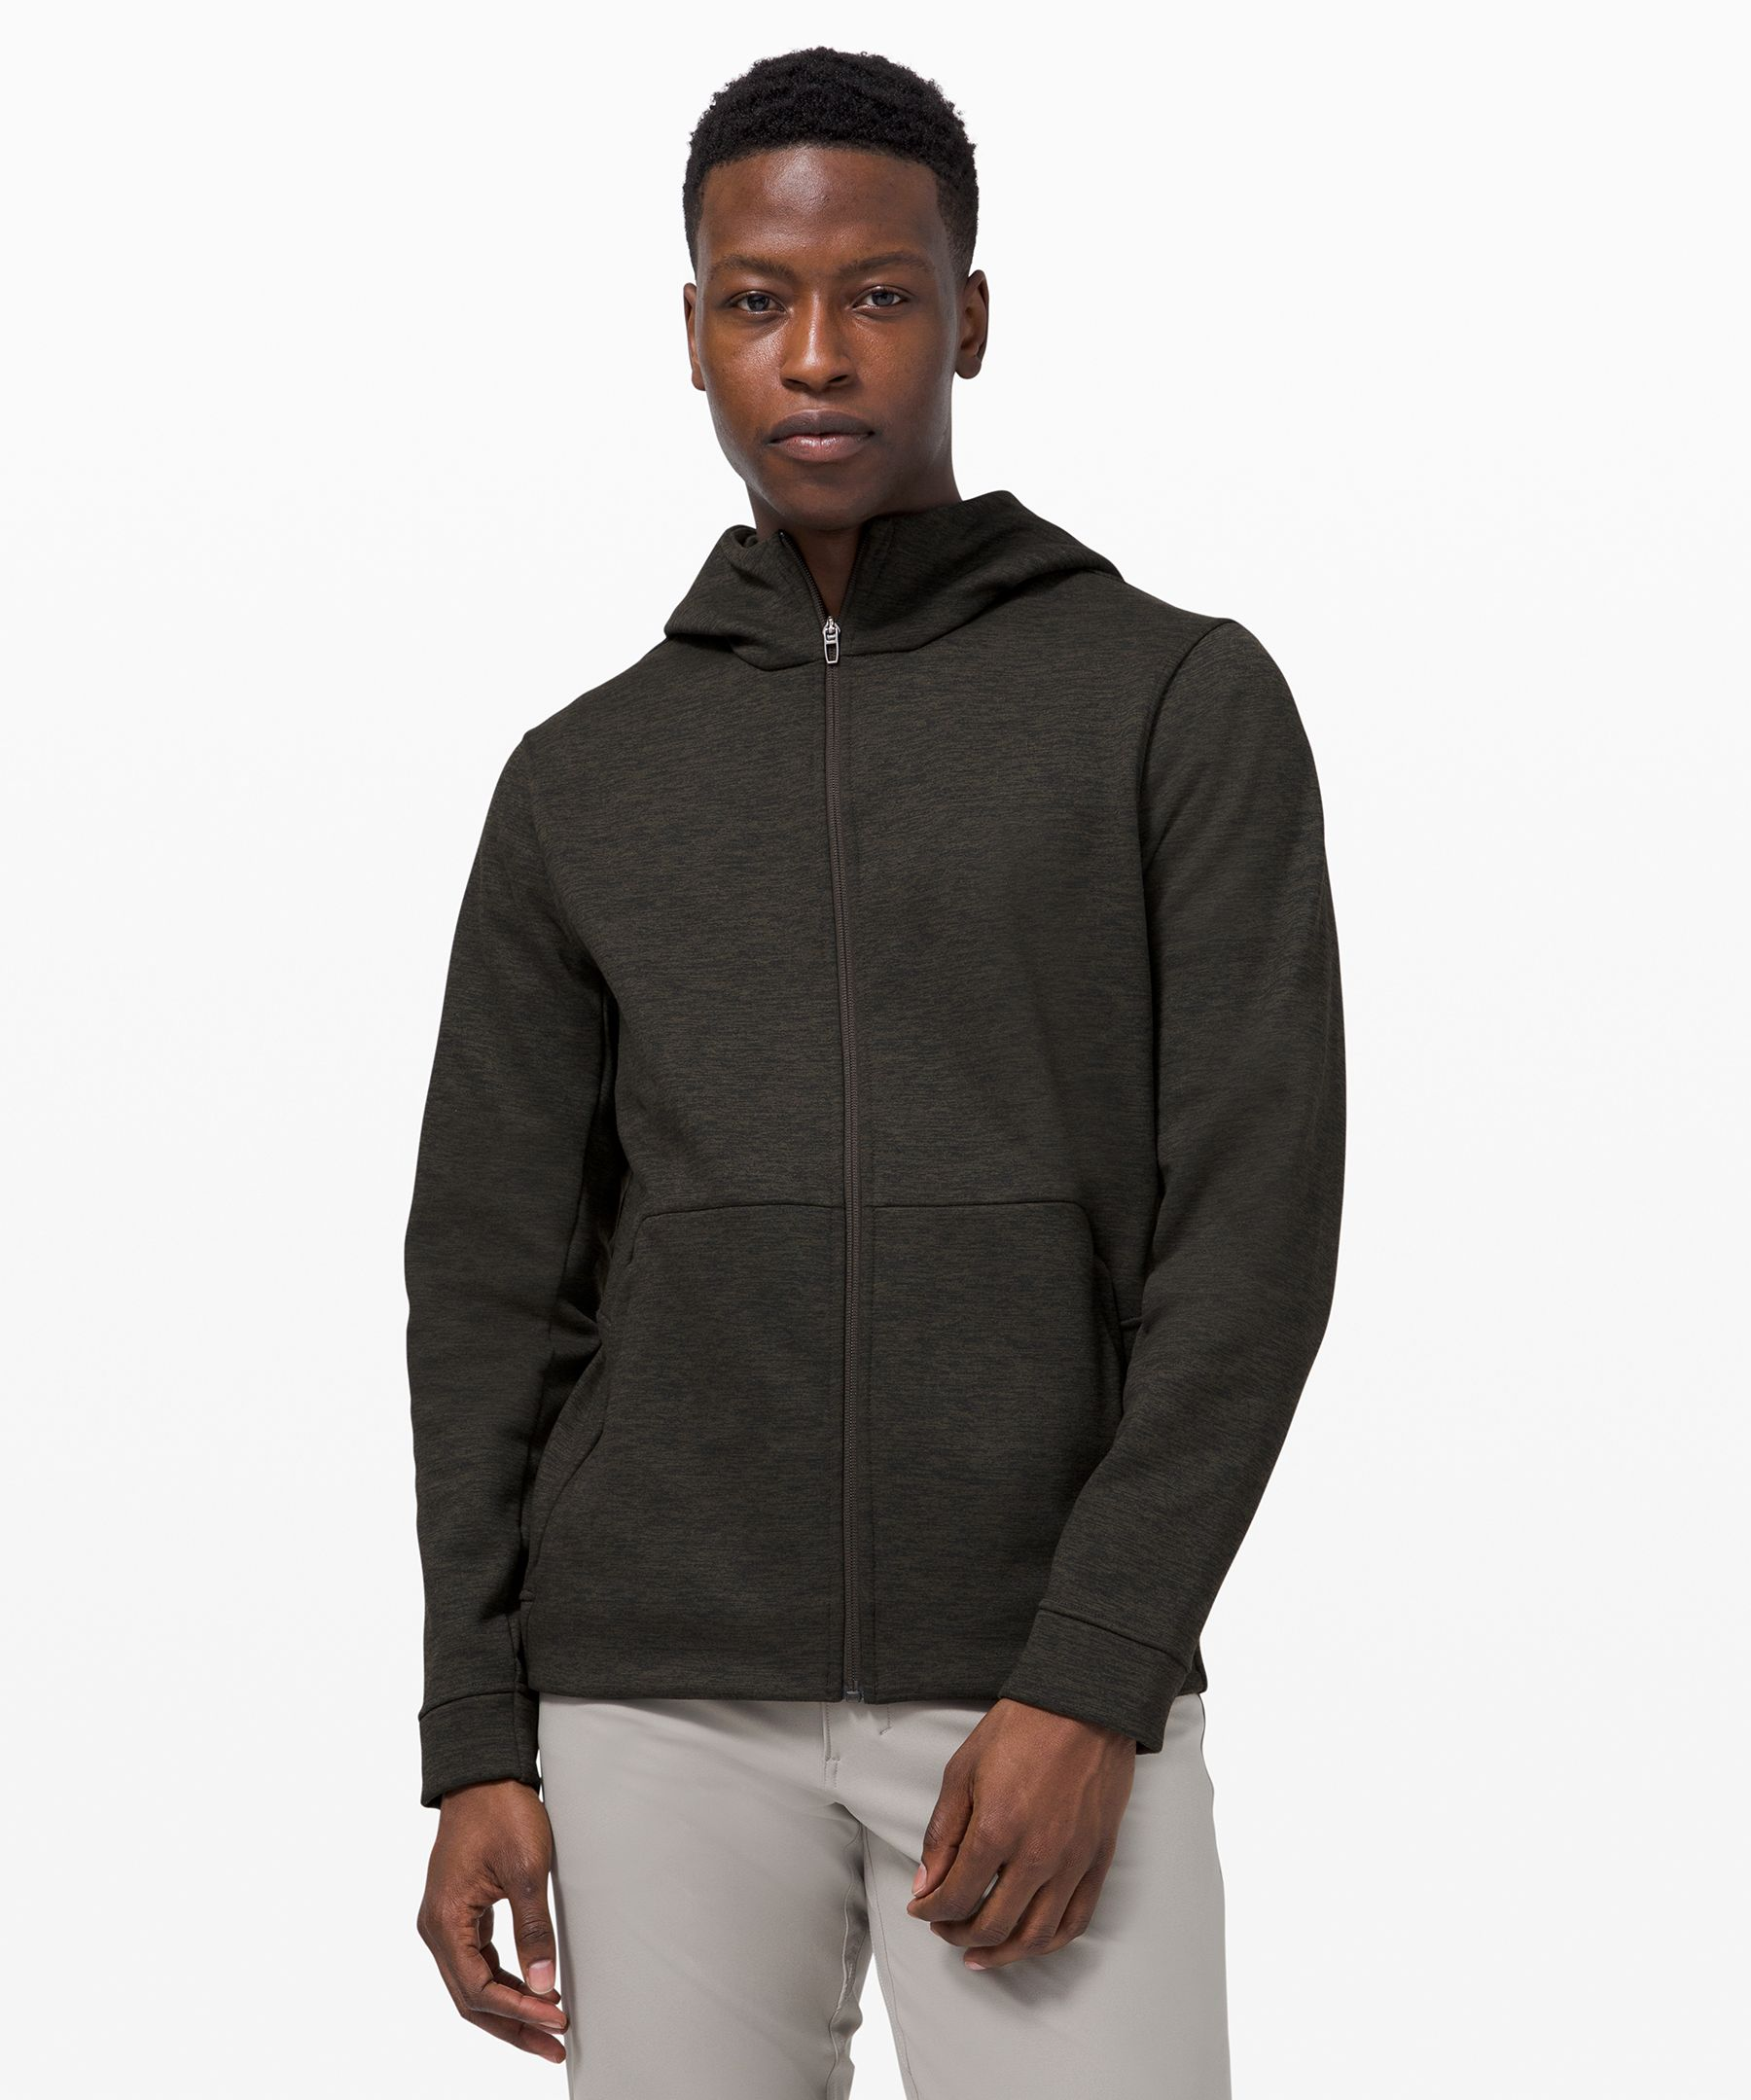 Soft, comfy wool-blend fabric and secure storage for essentials, this zip hoodie\\\'s a punch above your usual sweatshirt.